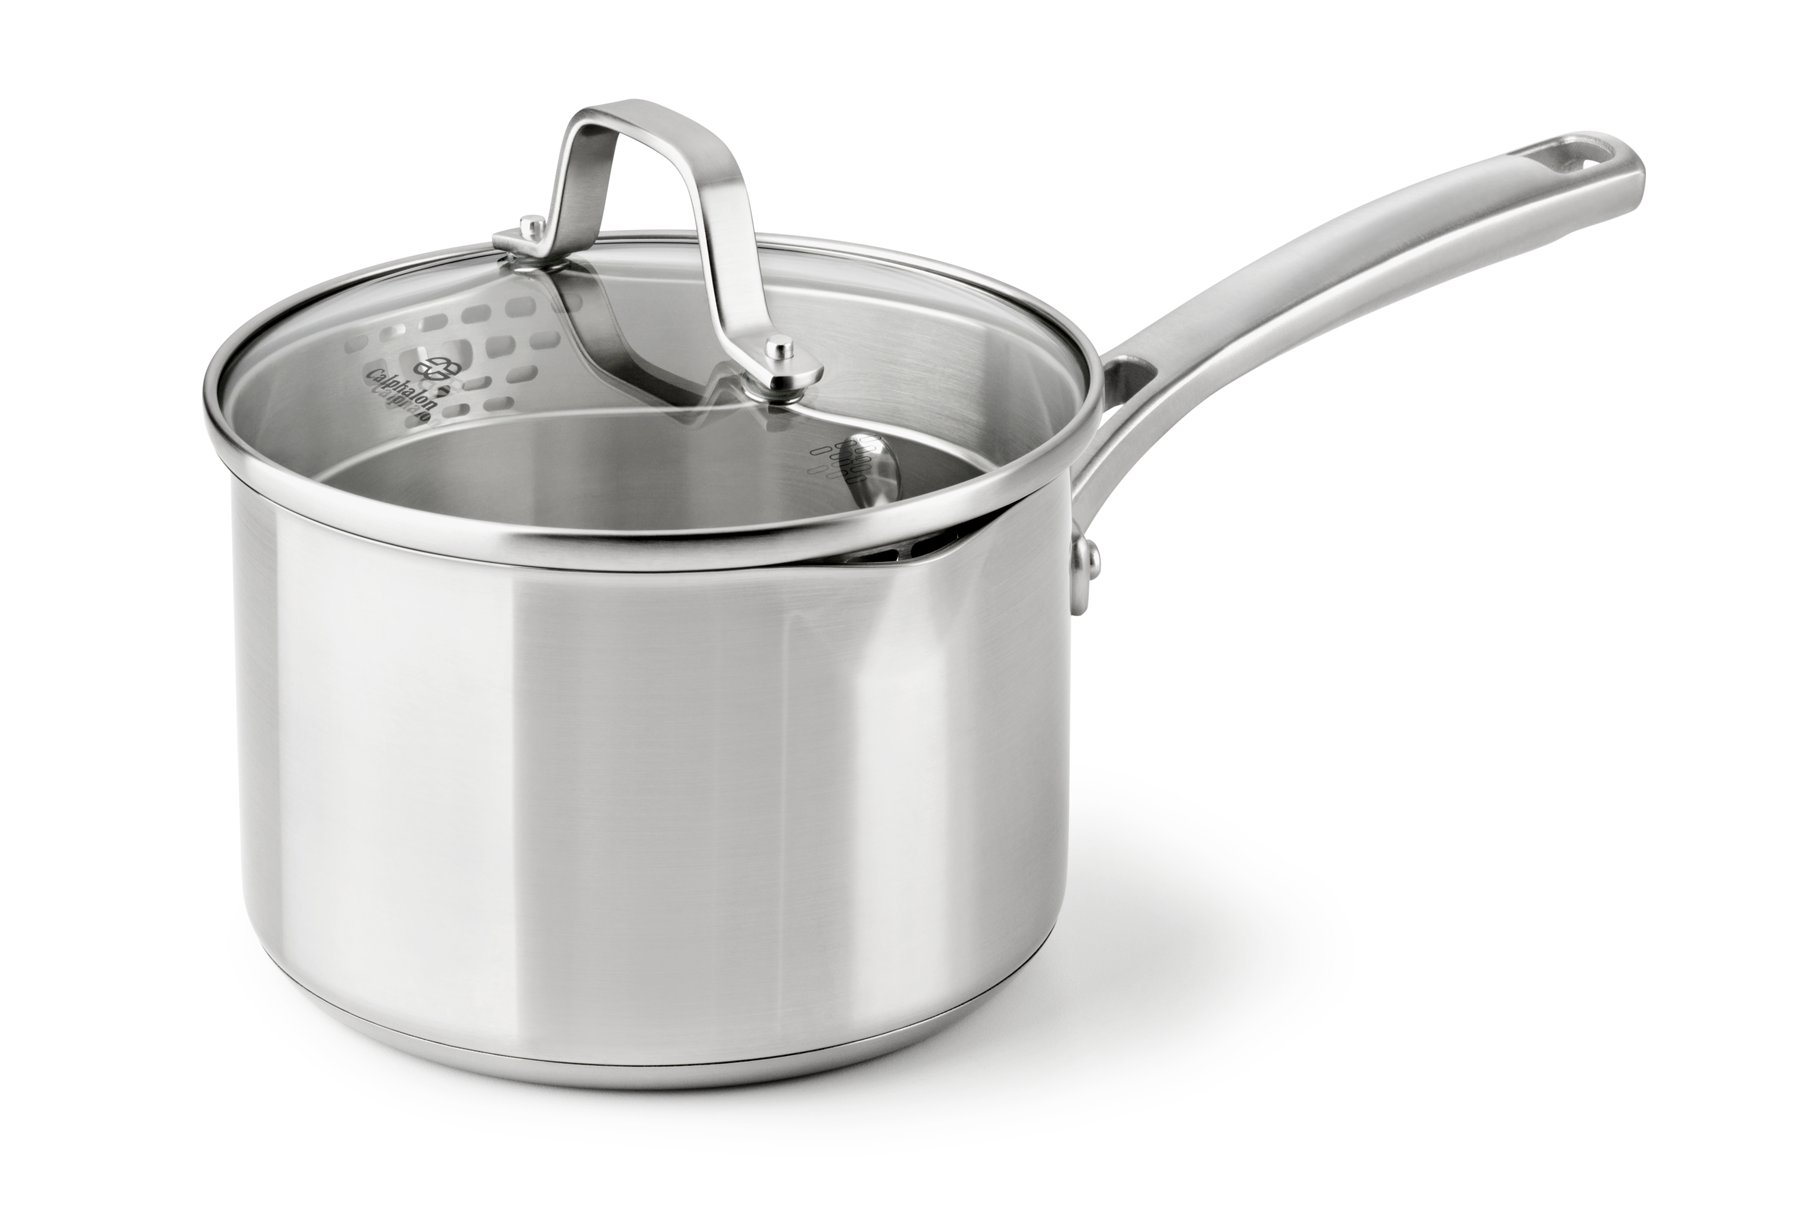 Calphalon Classic Stainless Steel 2.5-qt. Sauce Pan with Cover